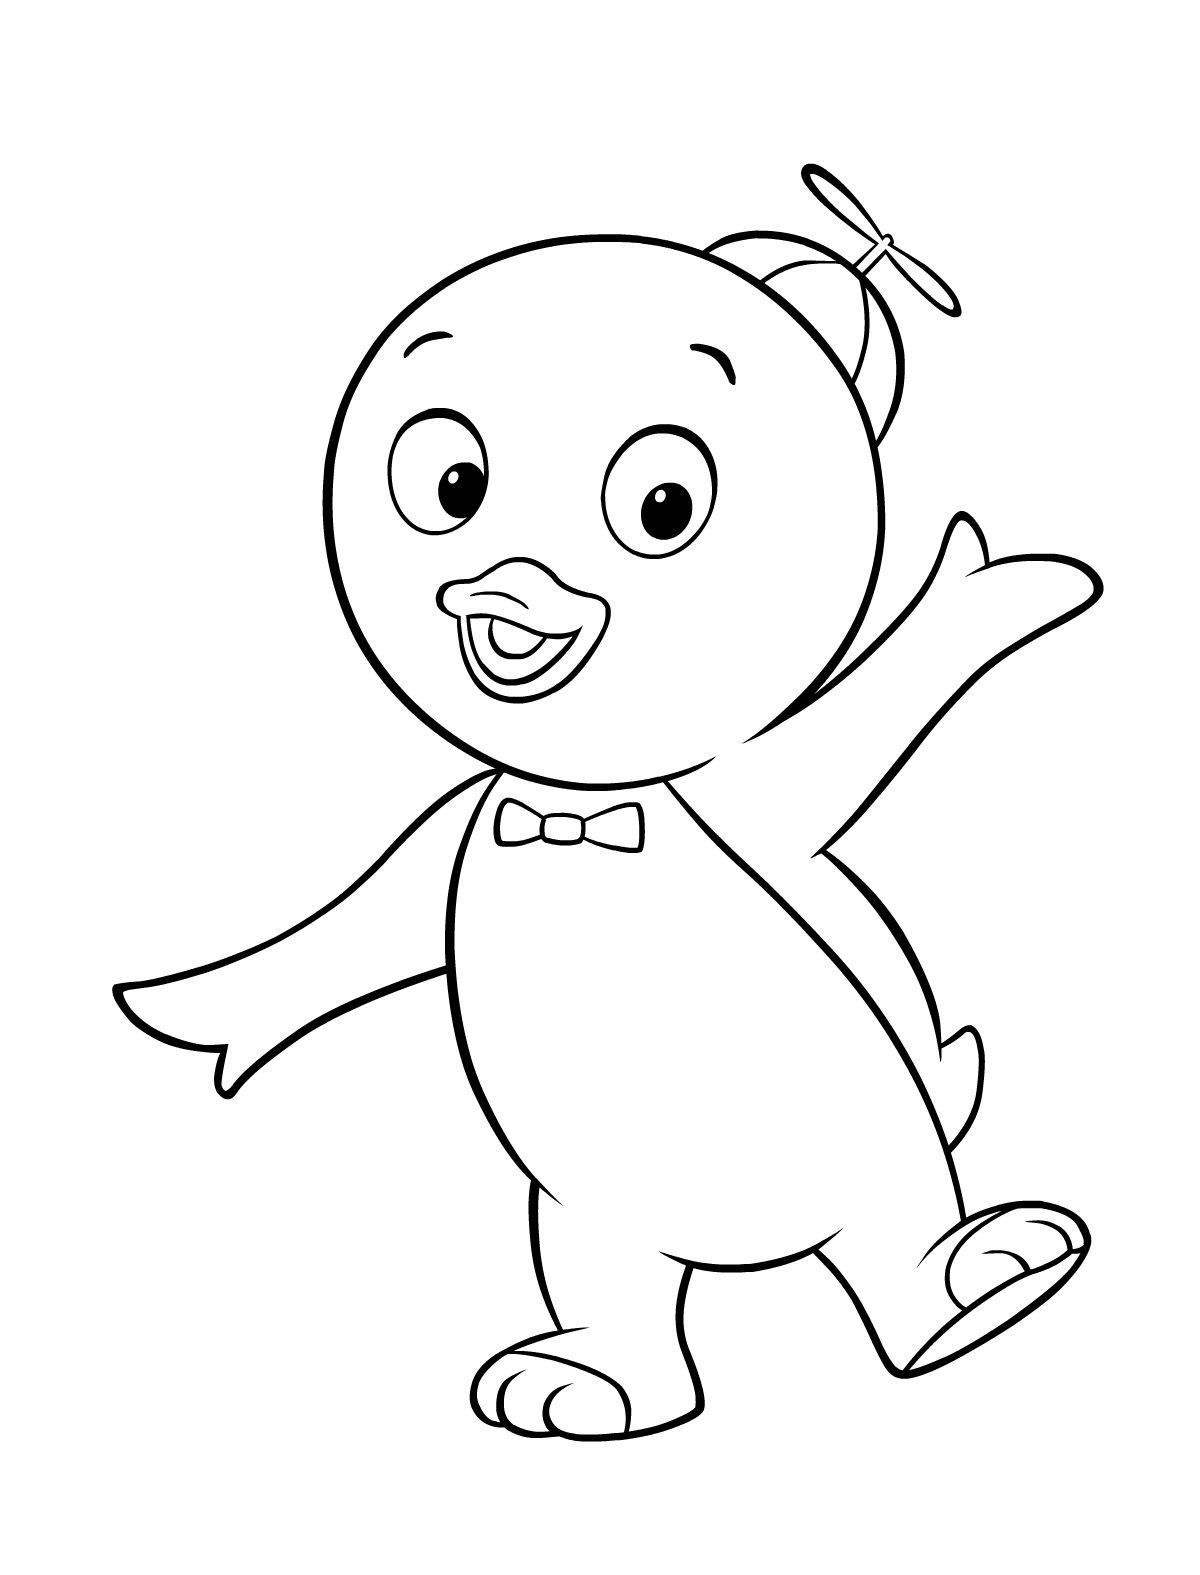 printable backyardigans coloring pages,printable,coloring pages